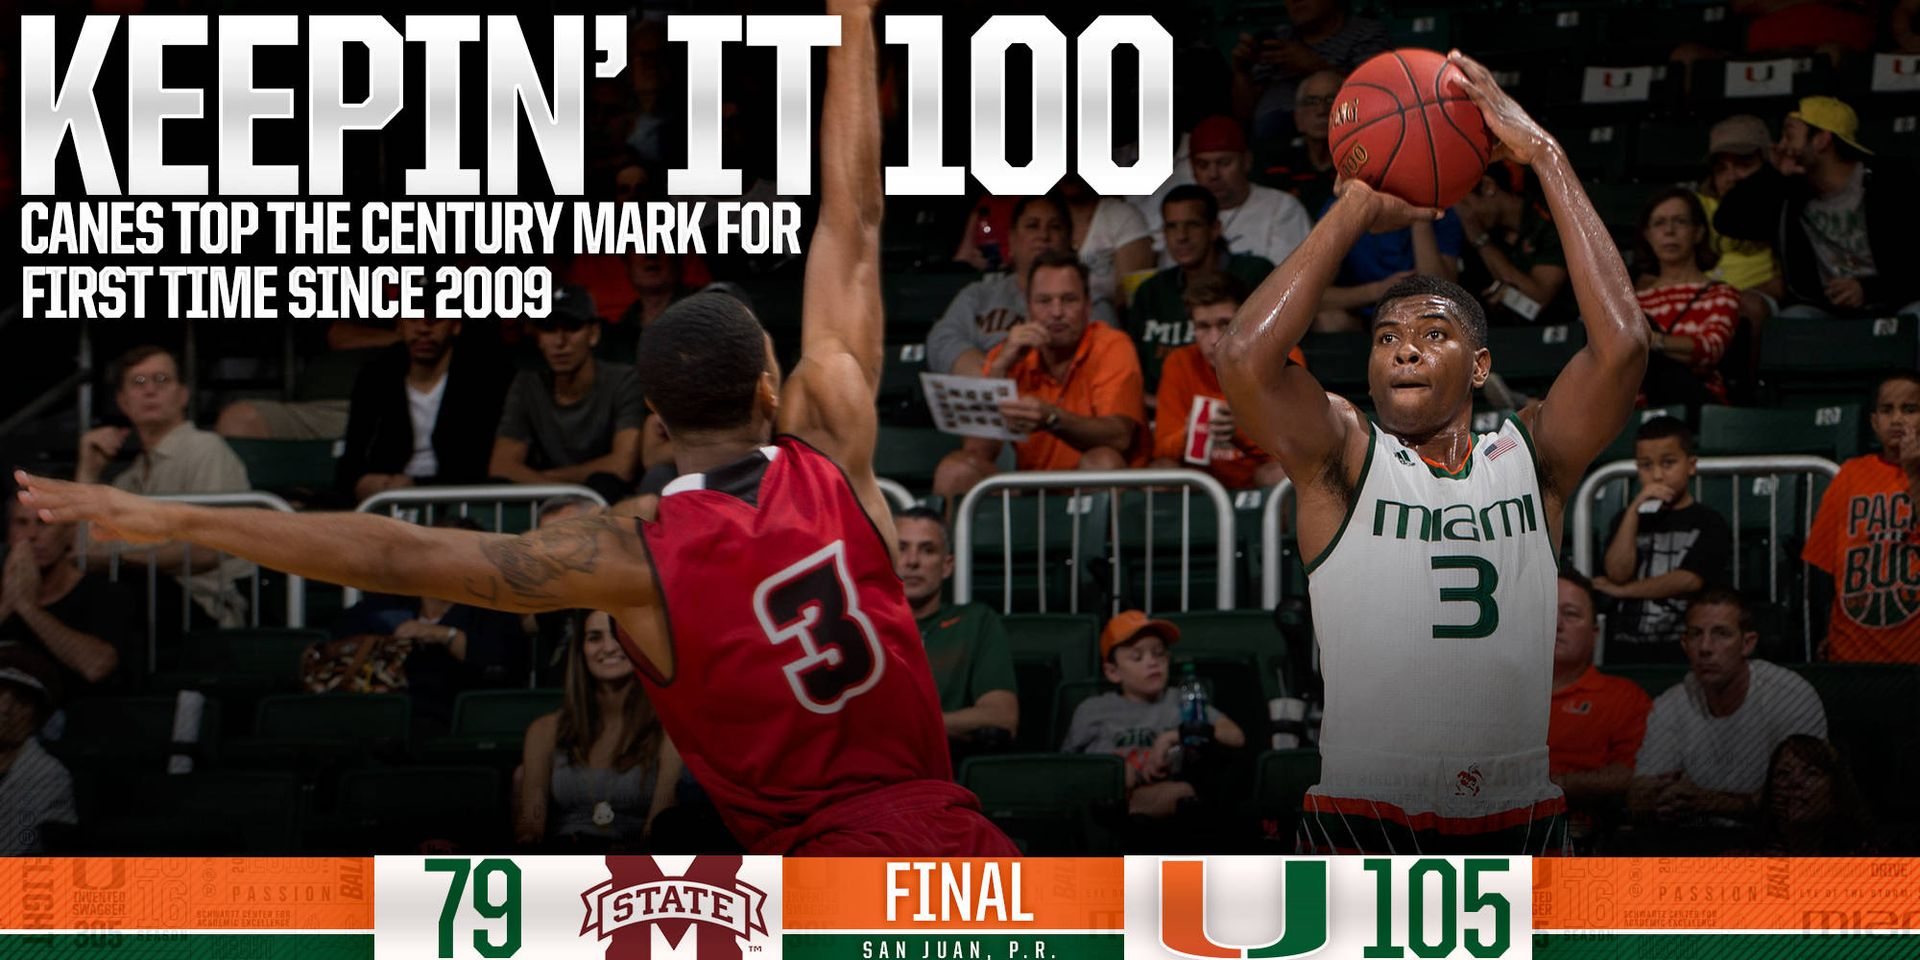 Canes Top 100 Points for First Time Since 2009